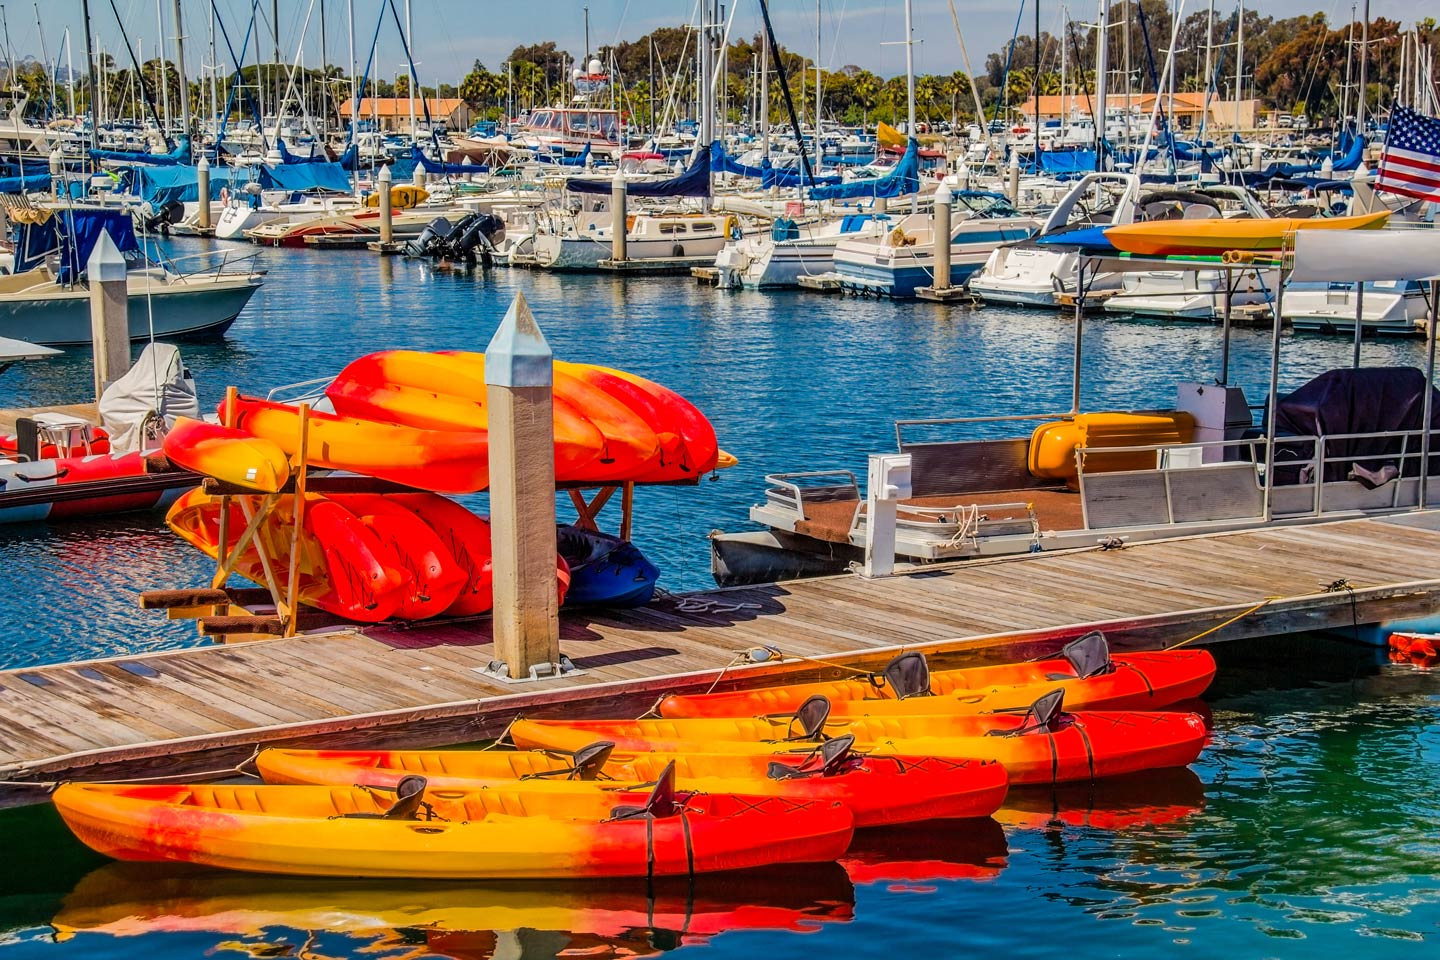 Fishing kayaks for rent at a marina in Southern California.